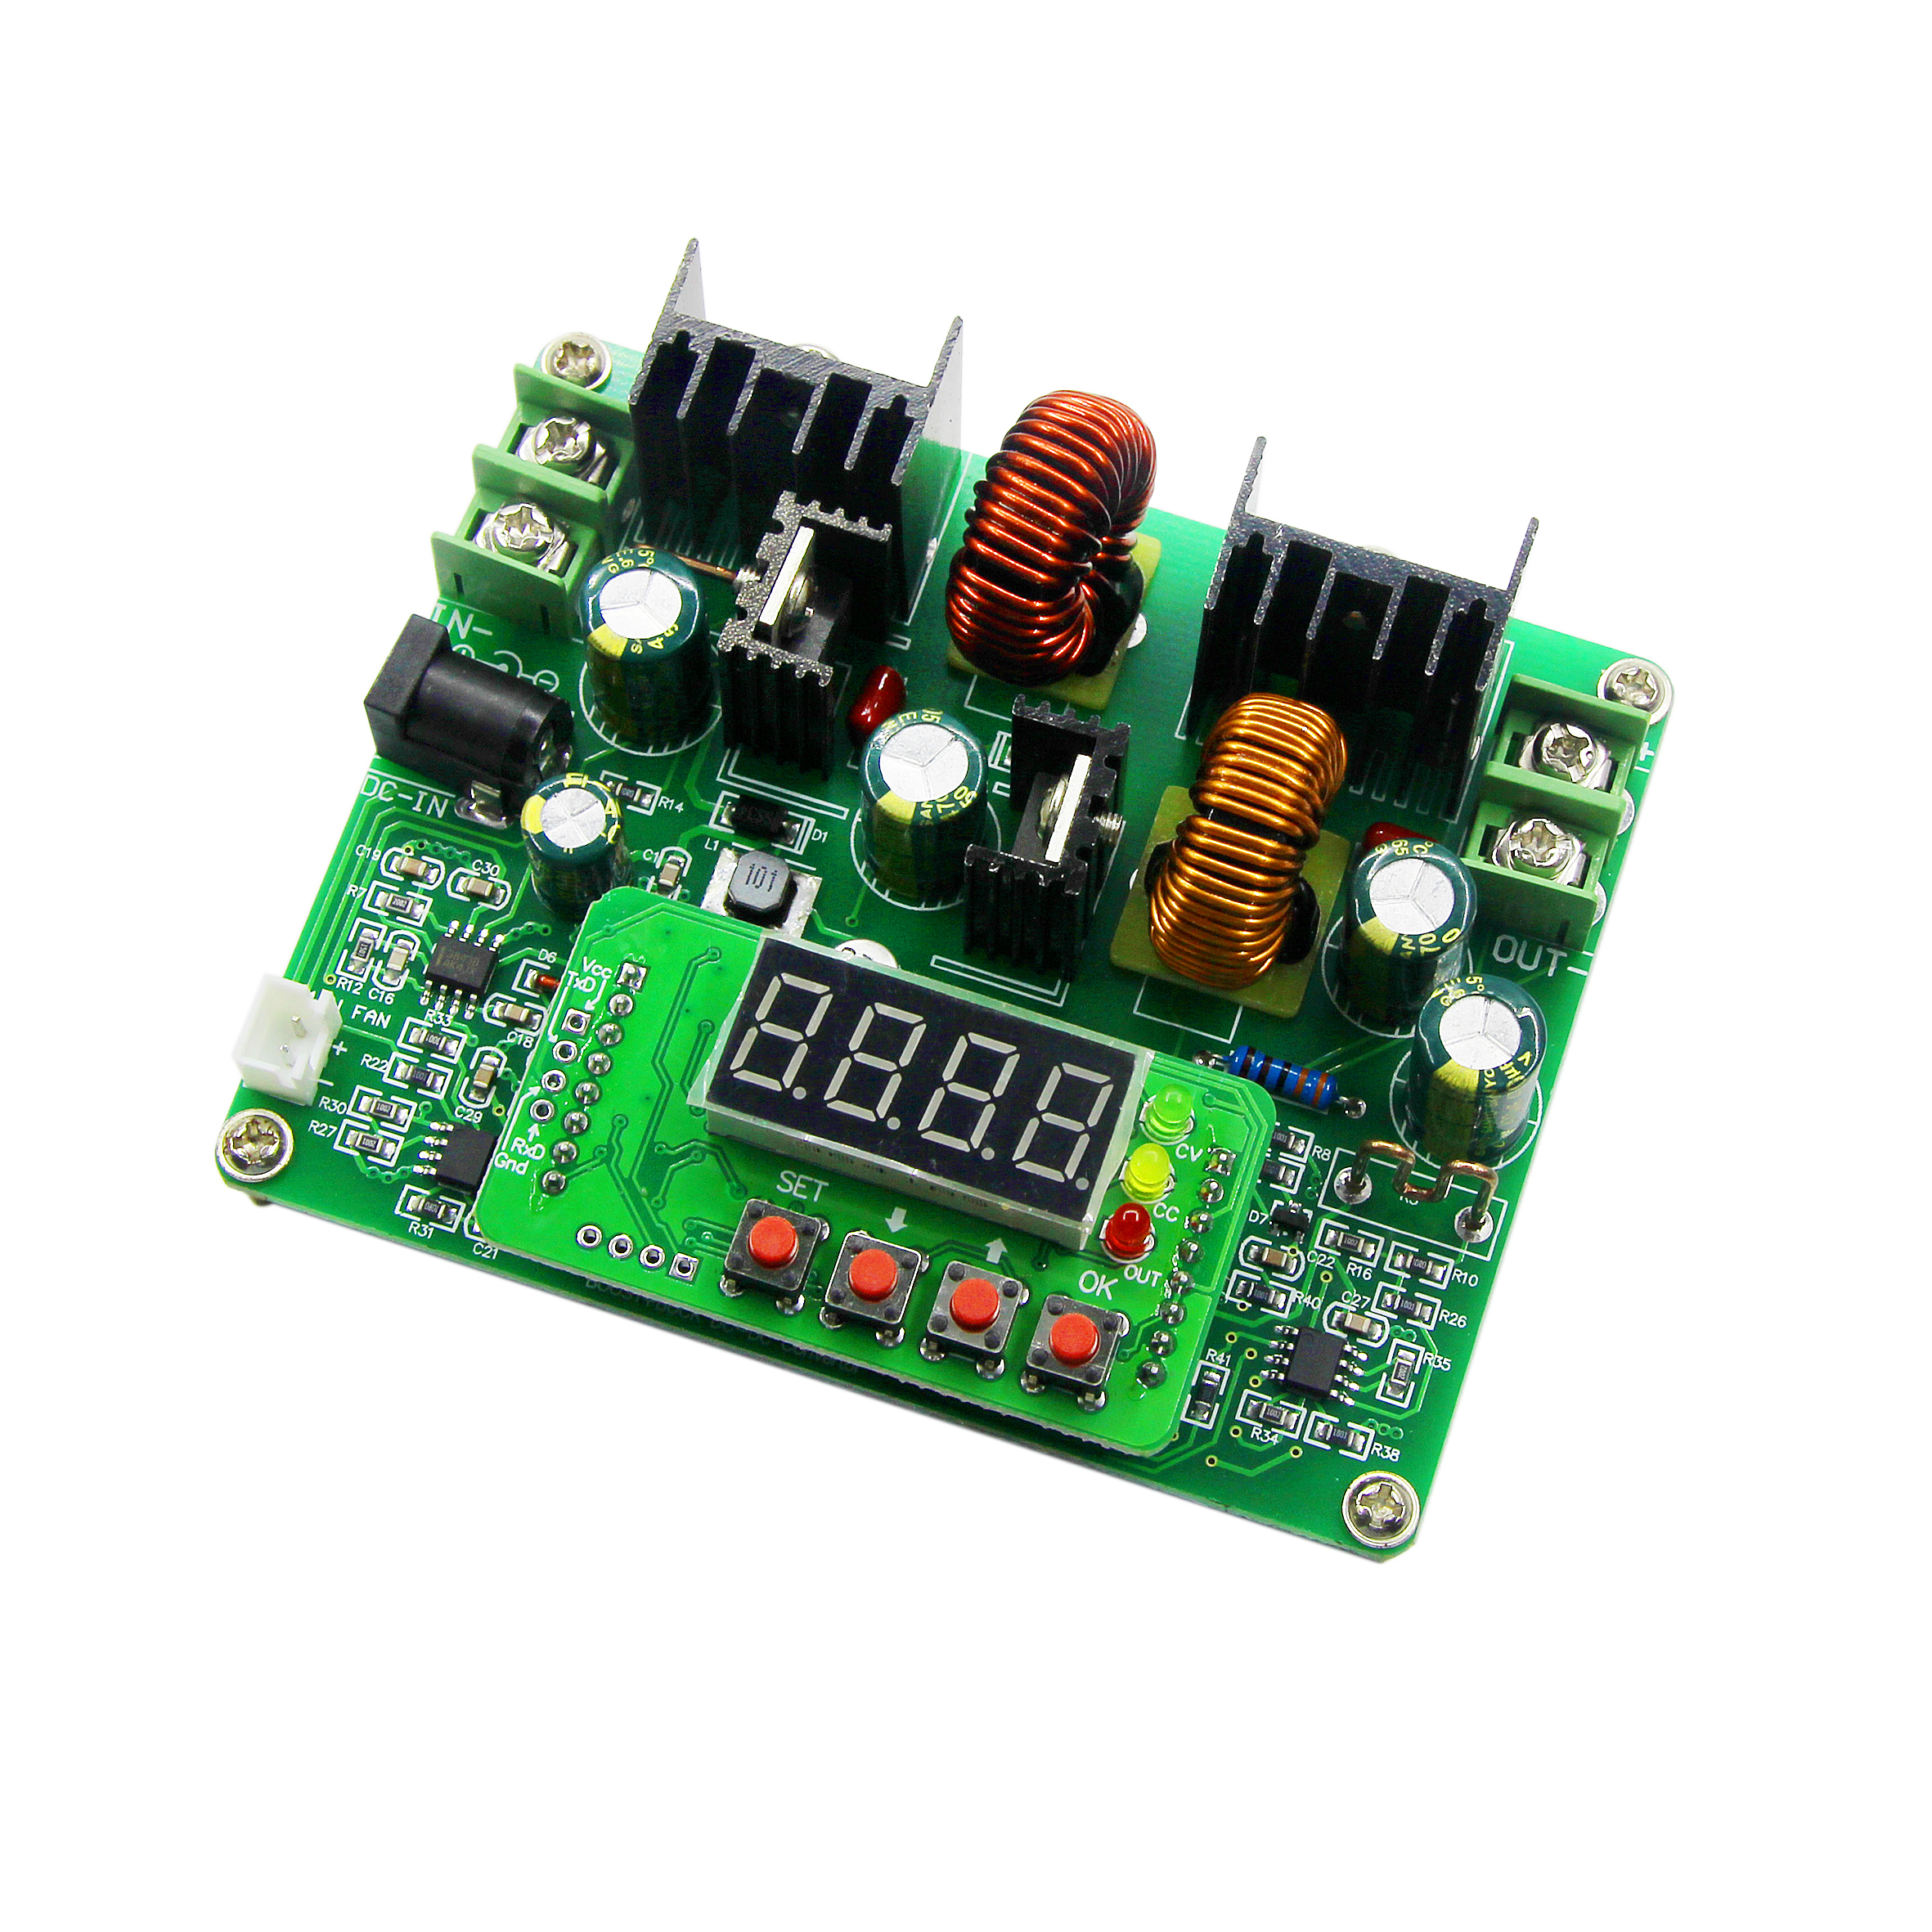 CNC DC Regulated Constant Current Power Supply Adjustable Voltage And Voltage And Current Meter 38V 6A Charger D3806